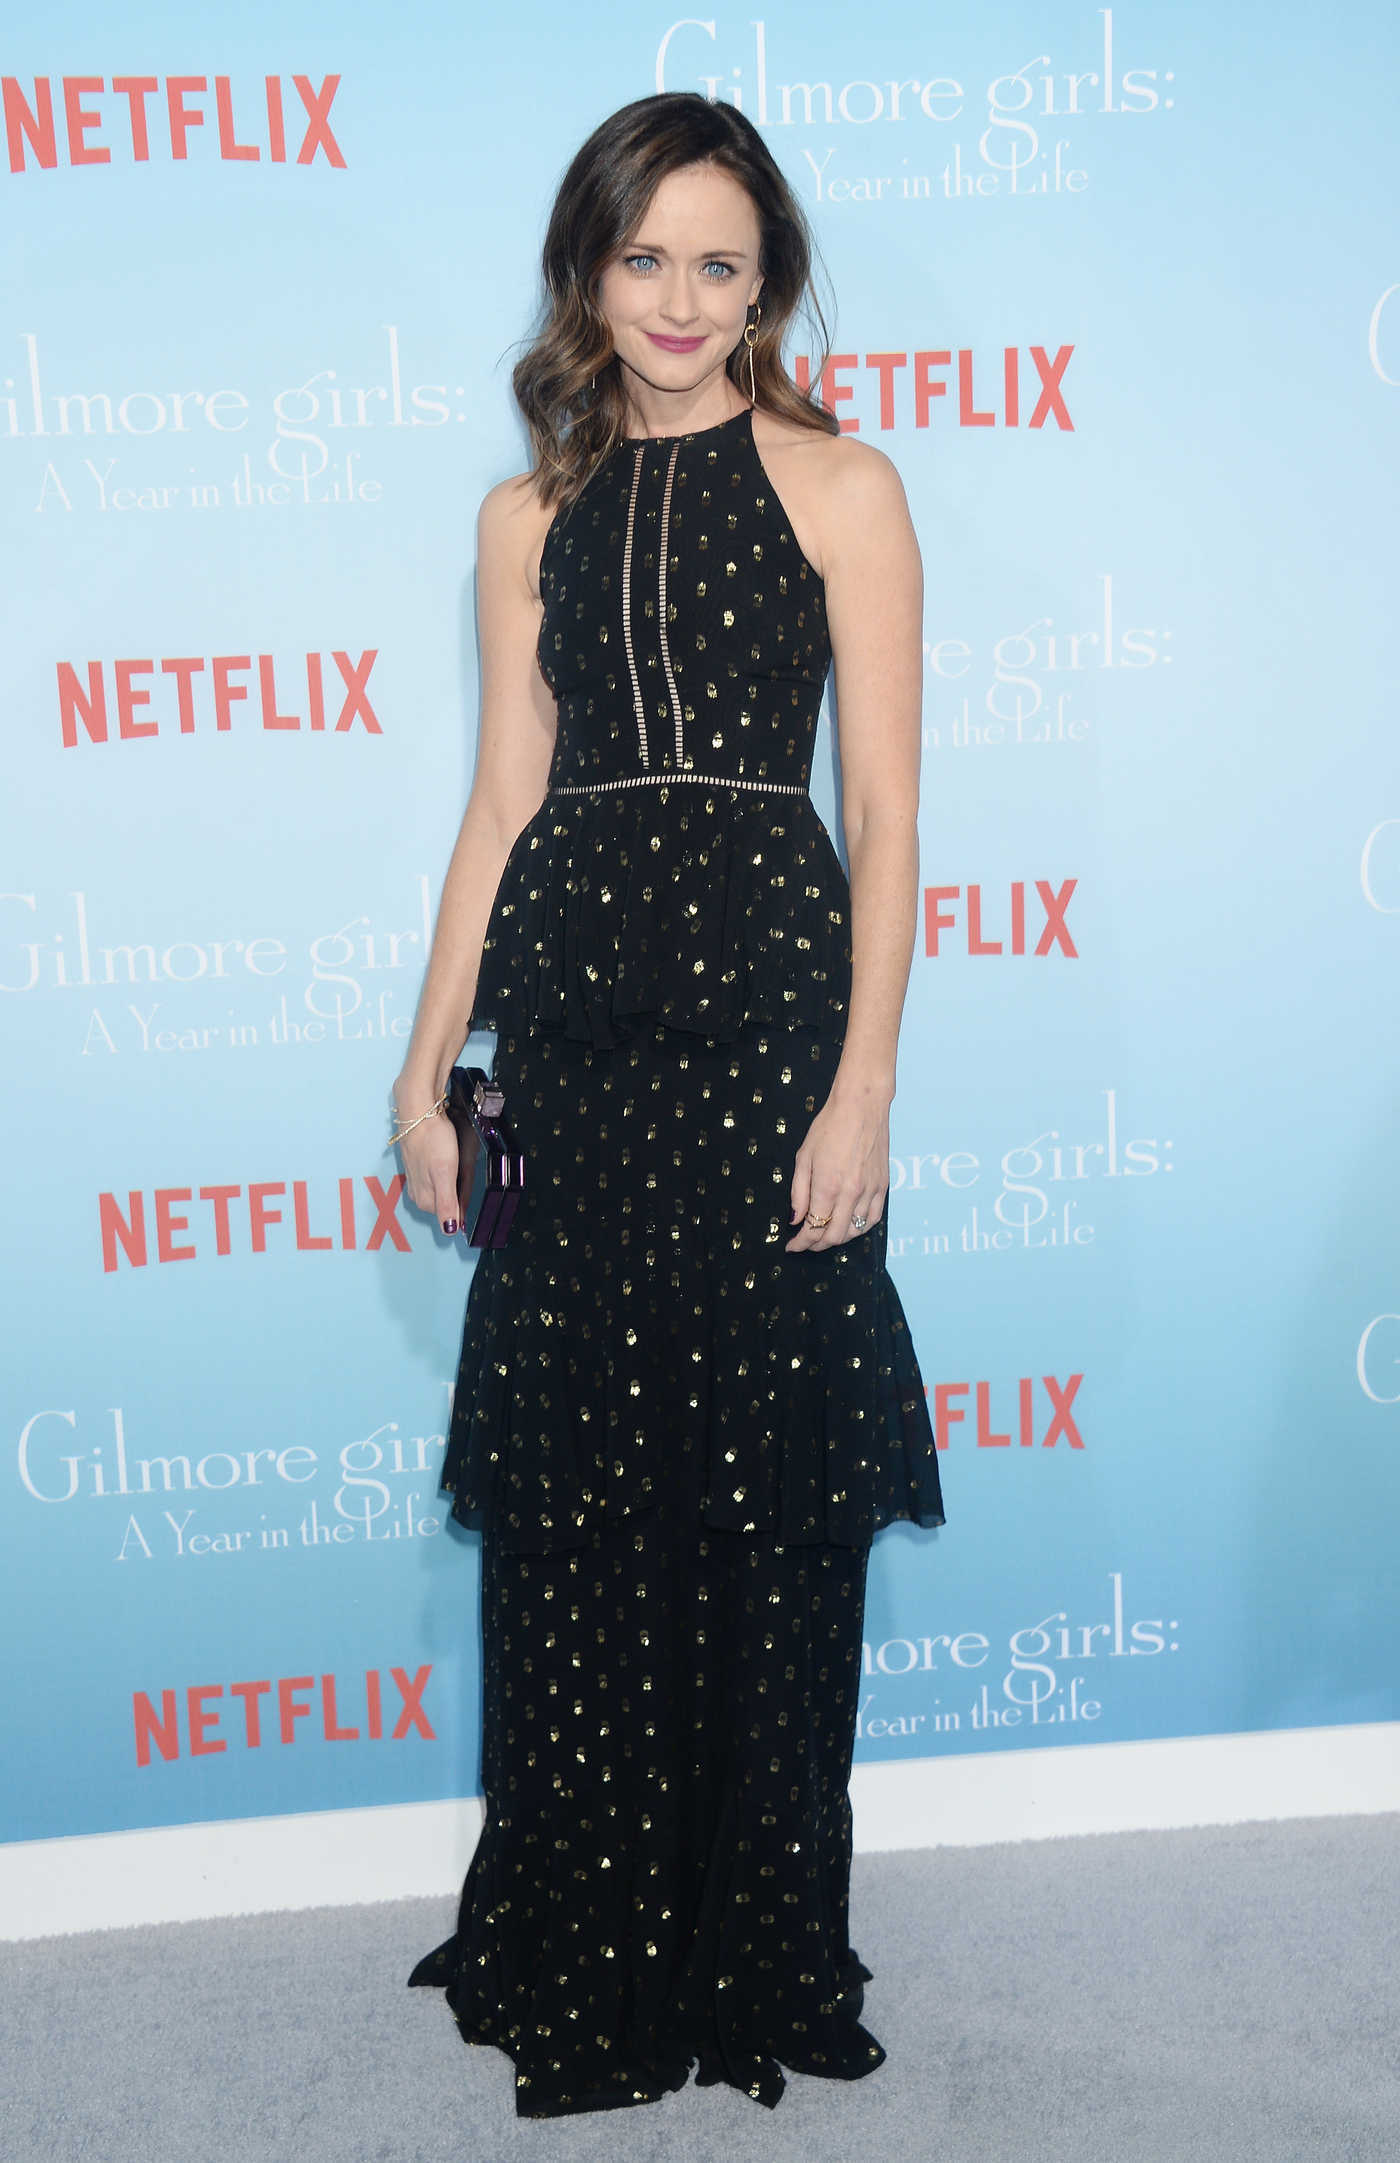 Alexis Bledel at the Gilmore Girls: A Year in the Life TV Series Premiere in Los Angeles 11/18/2016